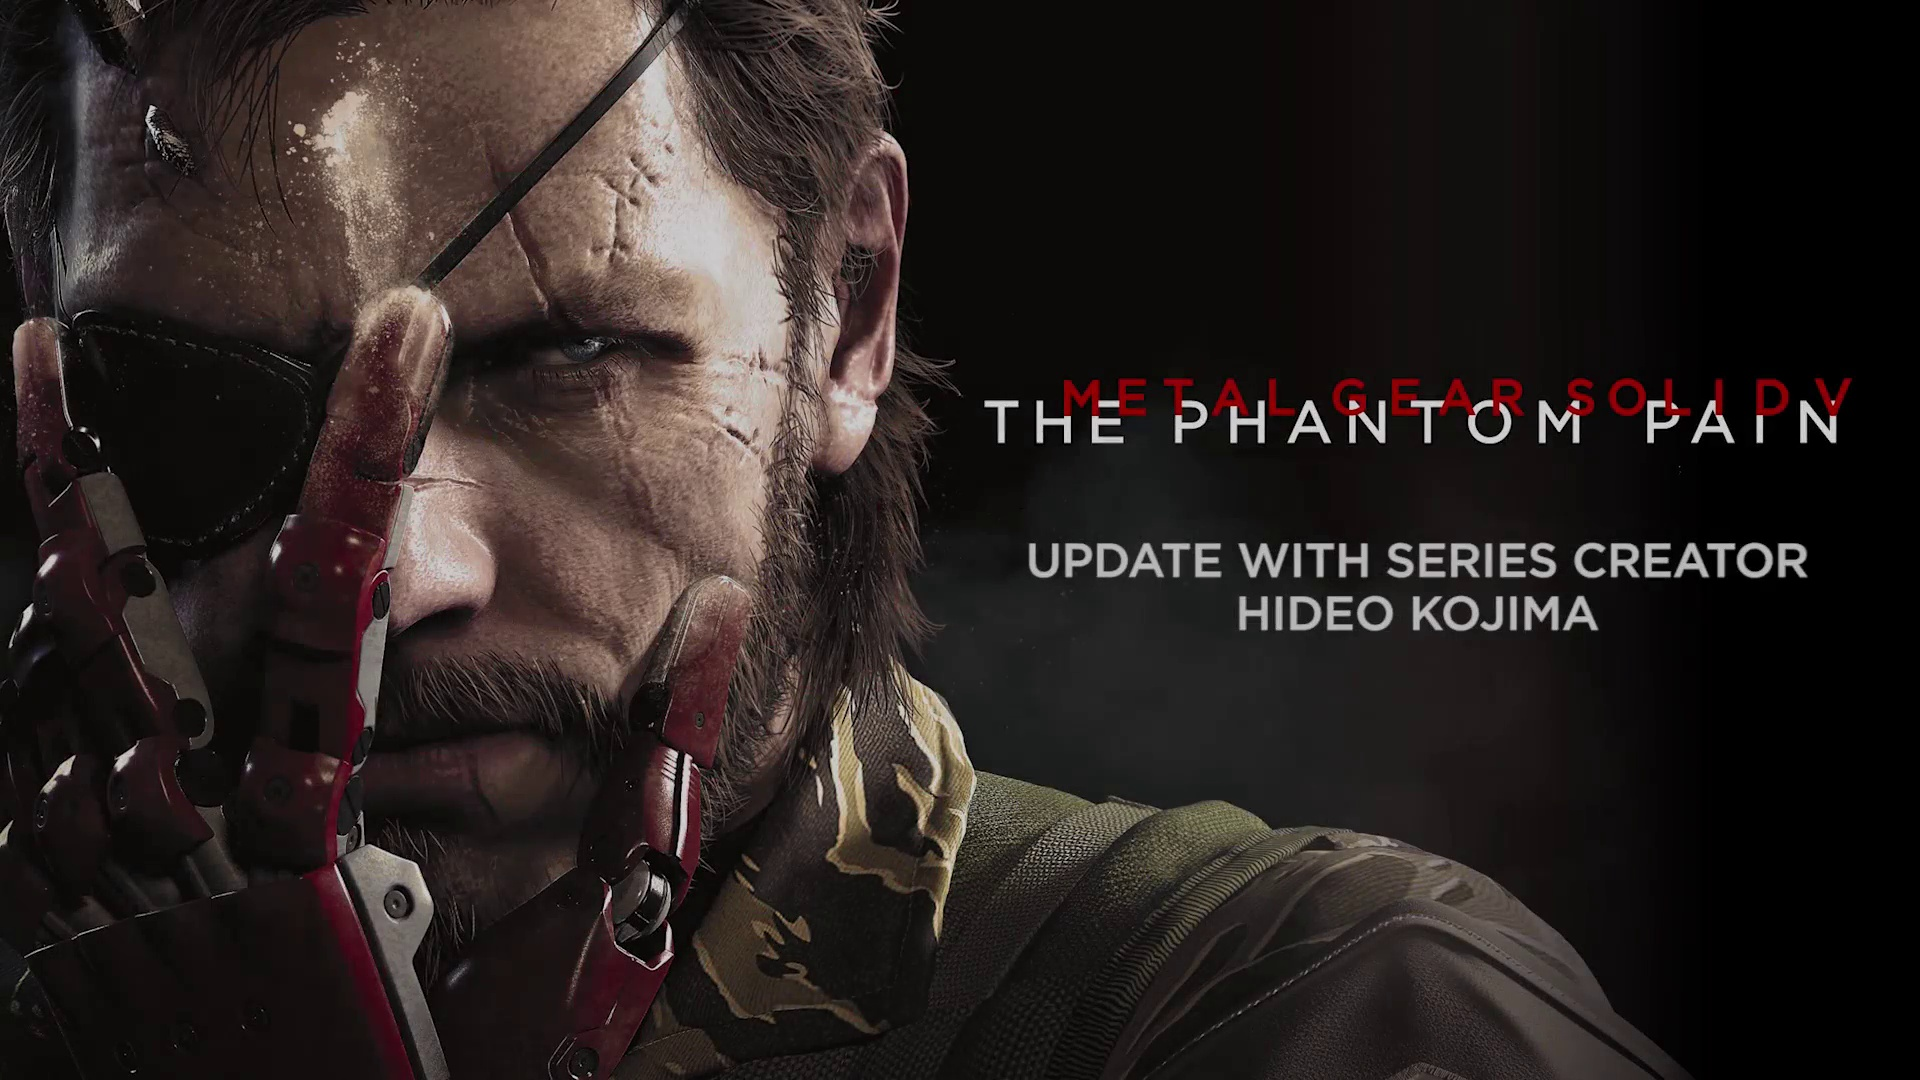 Metal Gear Solid V The Phantom Pain Steam KEY RU+CIS